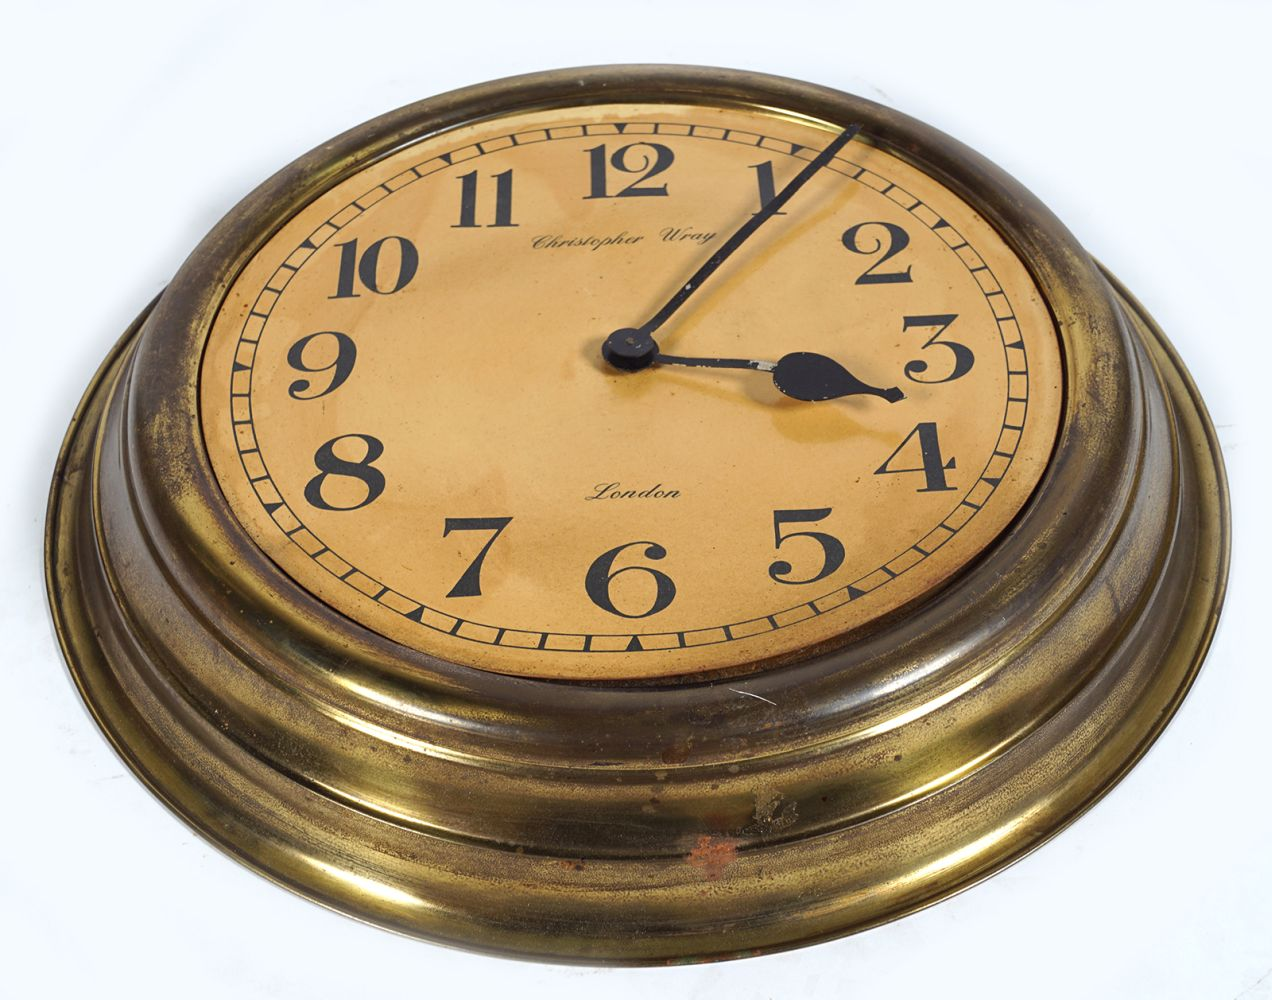 CHRISTOPHER WRAY BRASS CASED CLOCK - Image 4 of 5